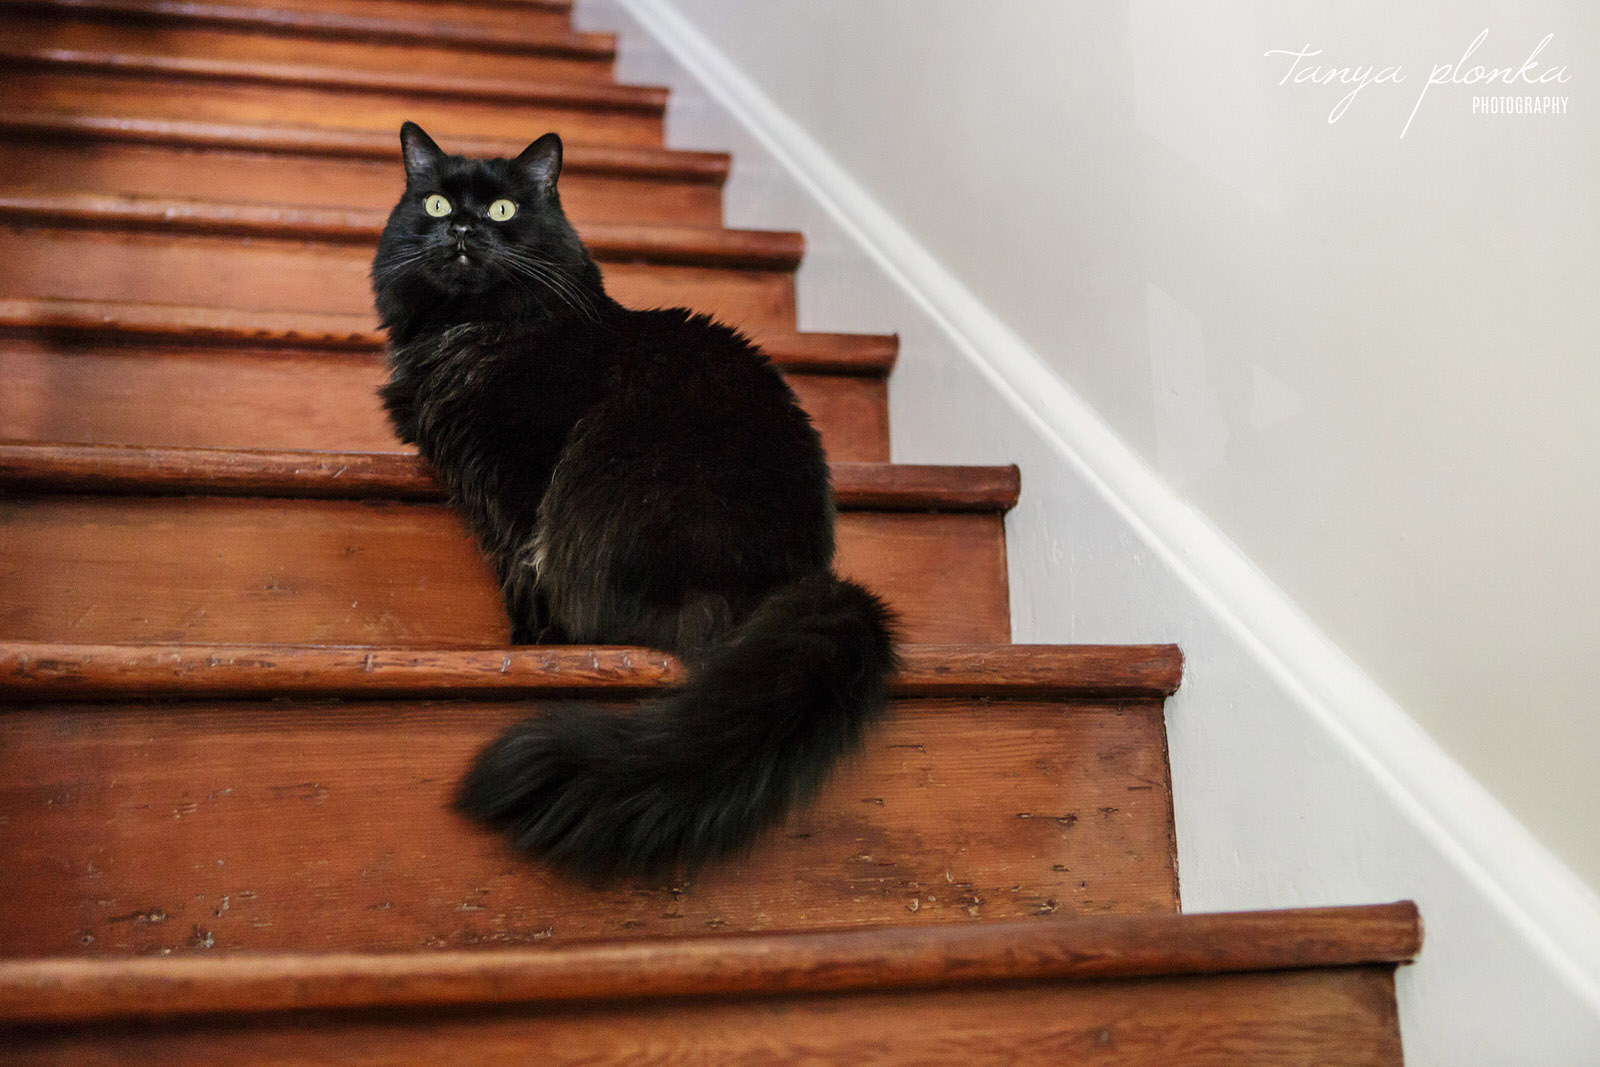 Fluffy black cat sits on wood staircase